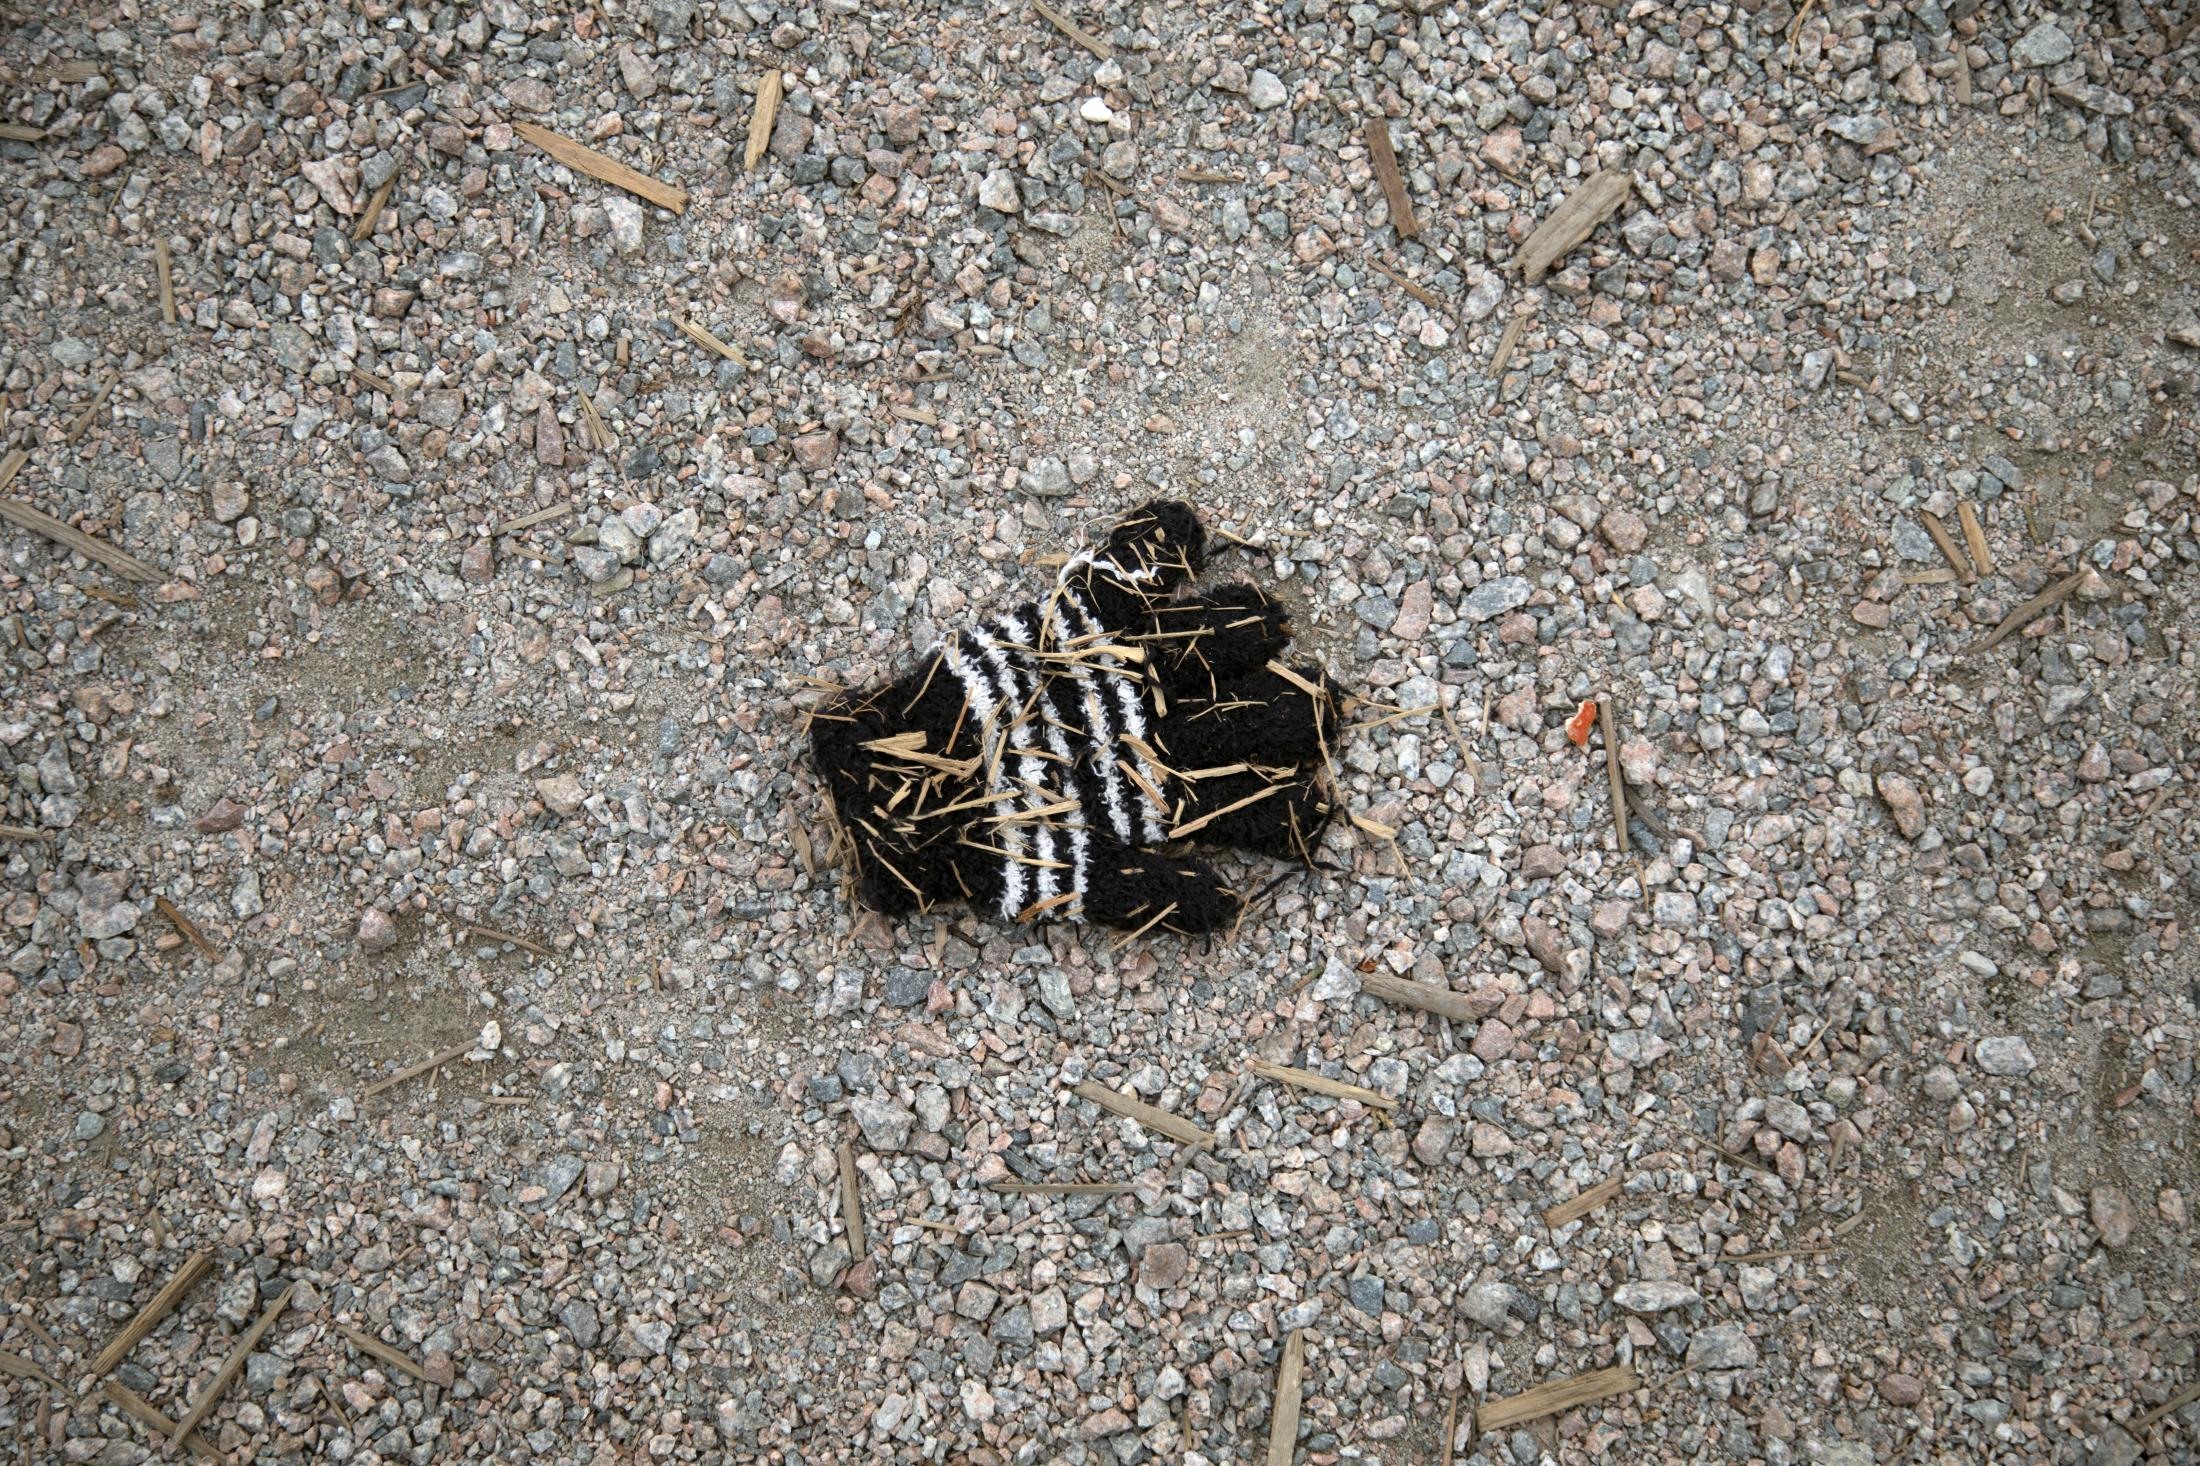 A glove is seen at a playground in Moodyville Park in North Vancouver, B.C., on Sunday, March 22, 2020. Effective Friday, March 20, 2020, the City and District of North Vancouver have closed all playgrounds and playing fields in an attempt to curb the spread of COVID-19. North Vancouver has been a hotspot of COVID-19, with ten deaths connected to the Lynn Valley Care Centre as of Monday, March 23, 2020.